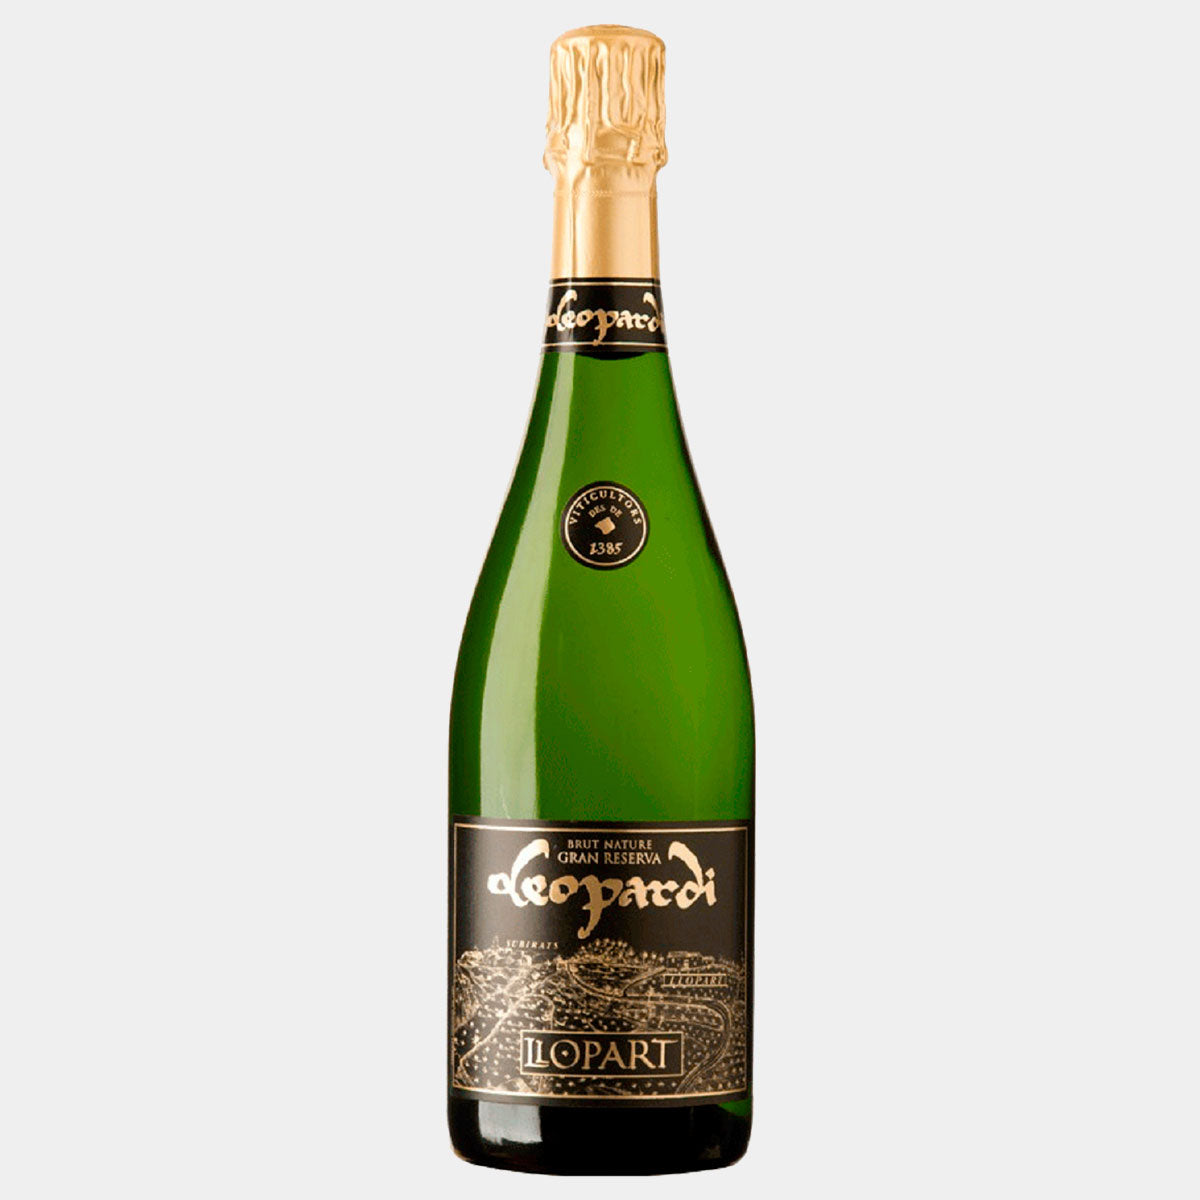 Llopart Leopardi Gran Reserva Brut Nature - Wines and Copas Barcelona